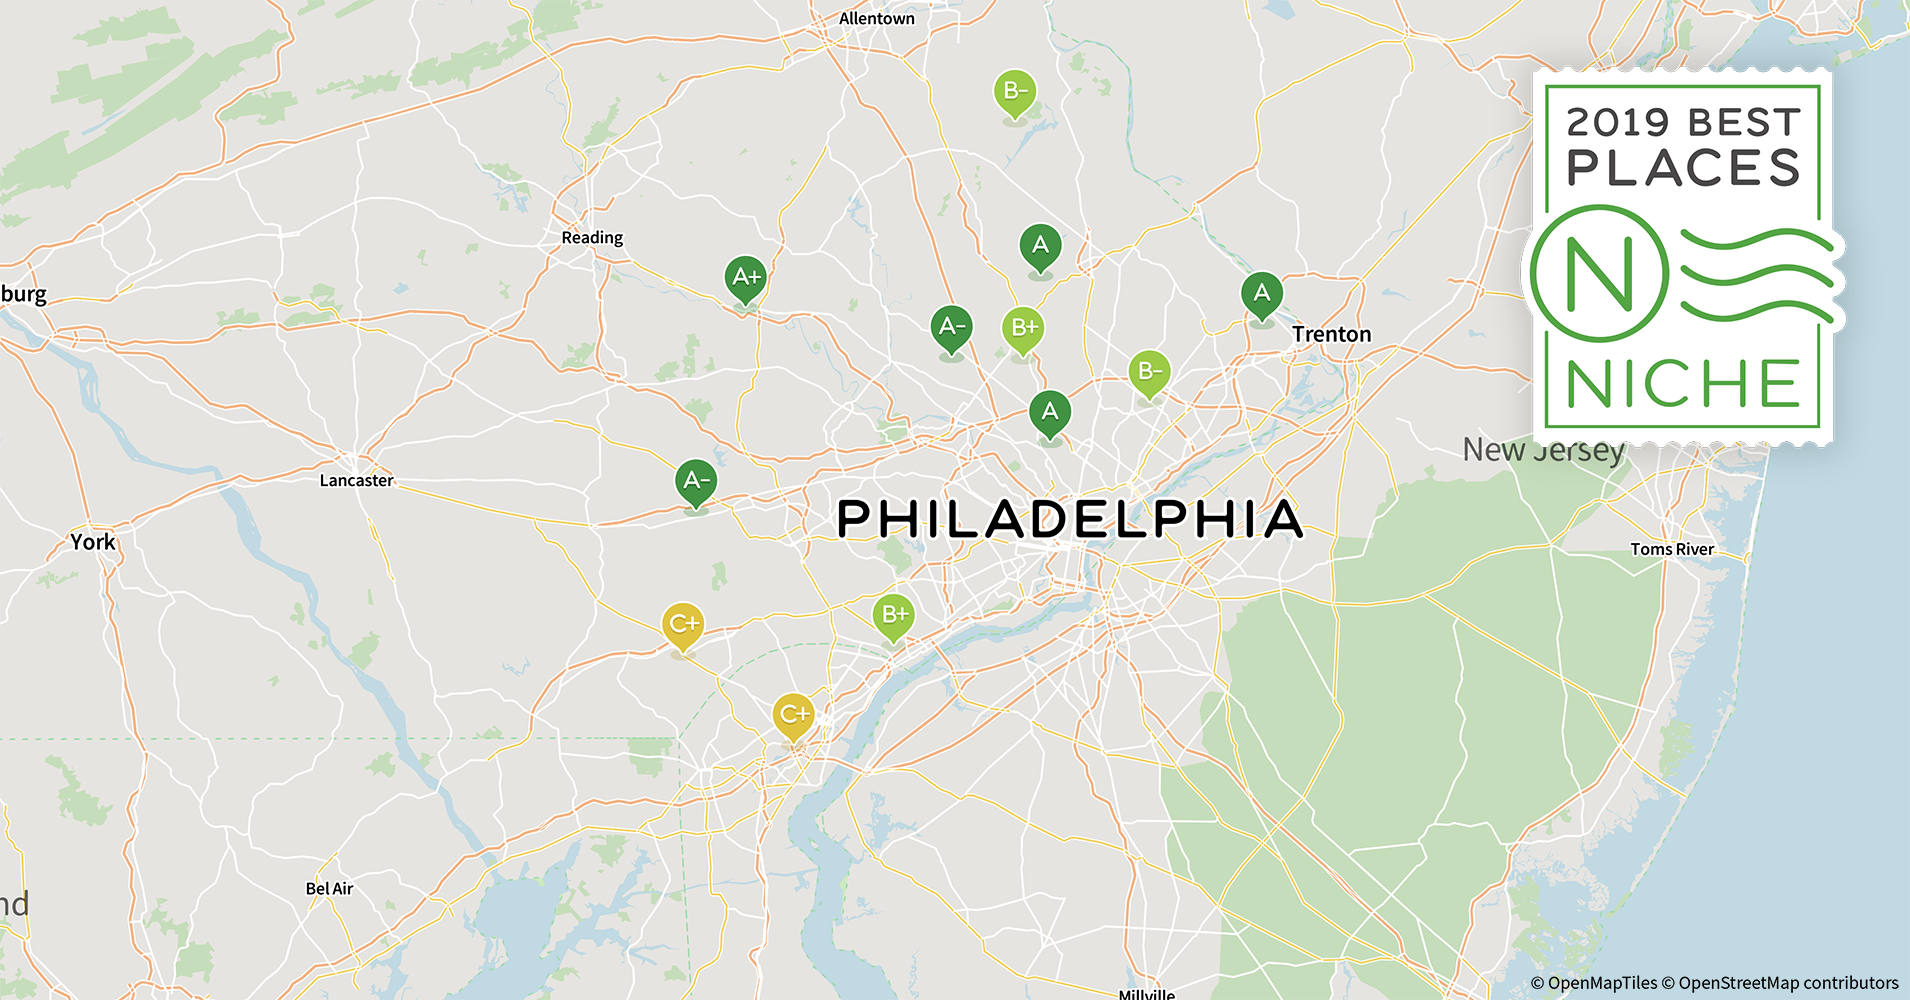 2019 Best Philadelphia Area Suburbs to Live - Niche Map Of Cities In Southern Pa on map of western pa cities, map of eastern ohio and western pennsylvania, map of southern ca cities, map of southern pa counties, west virginia major cities, map of northern ohio southern michigan,